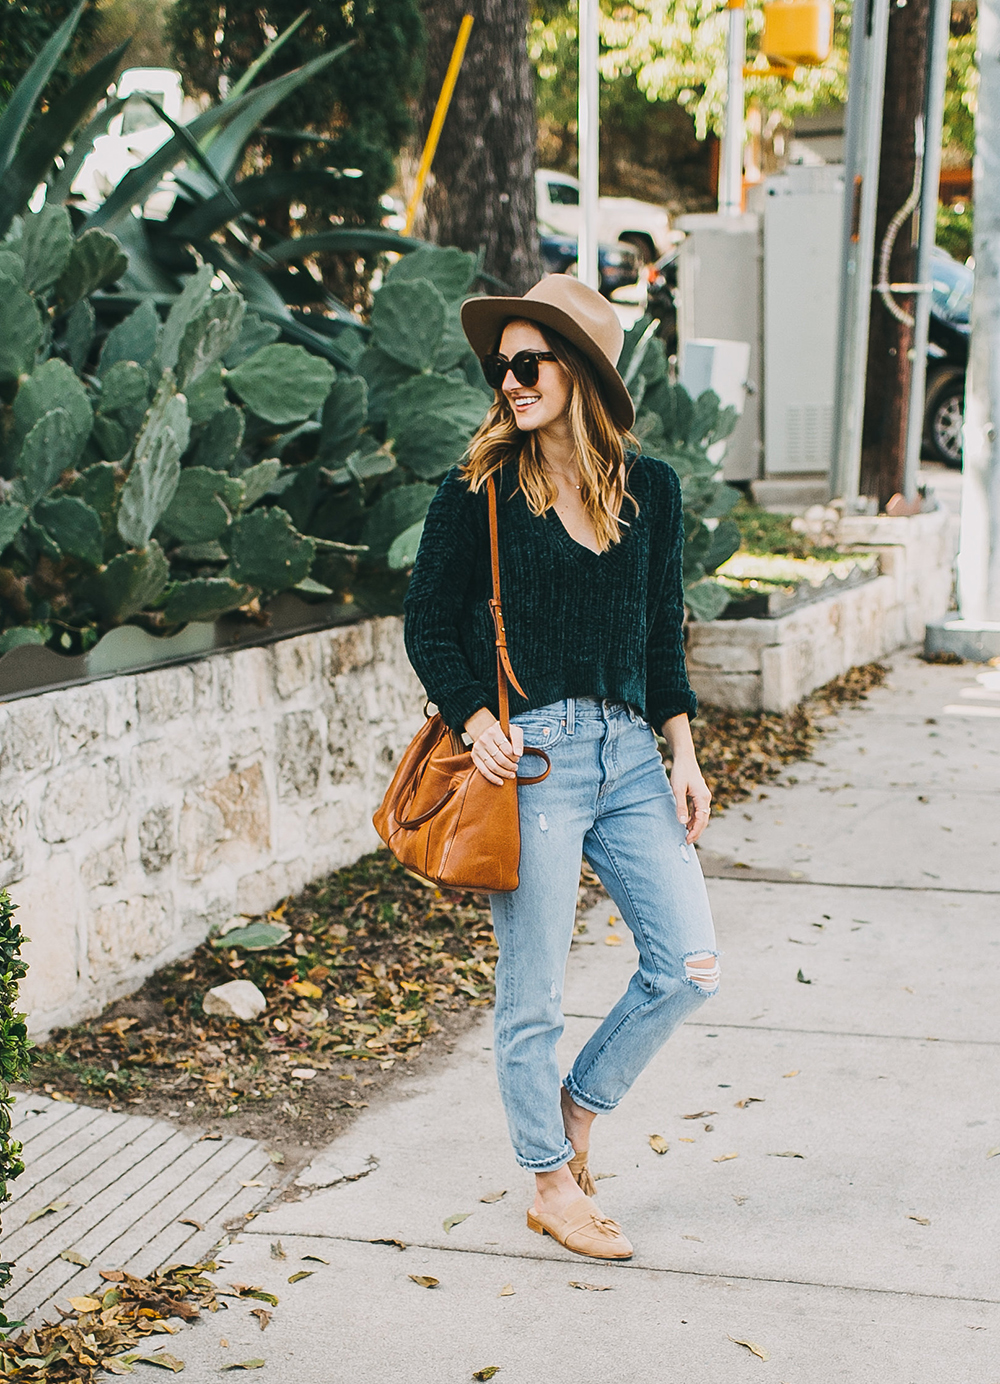 livvyland-blog-olivia-watson-austin-texas-fashion-style-blogger-teal-cropped-sweater-tassel-slides-1